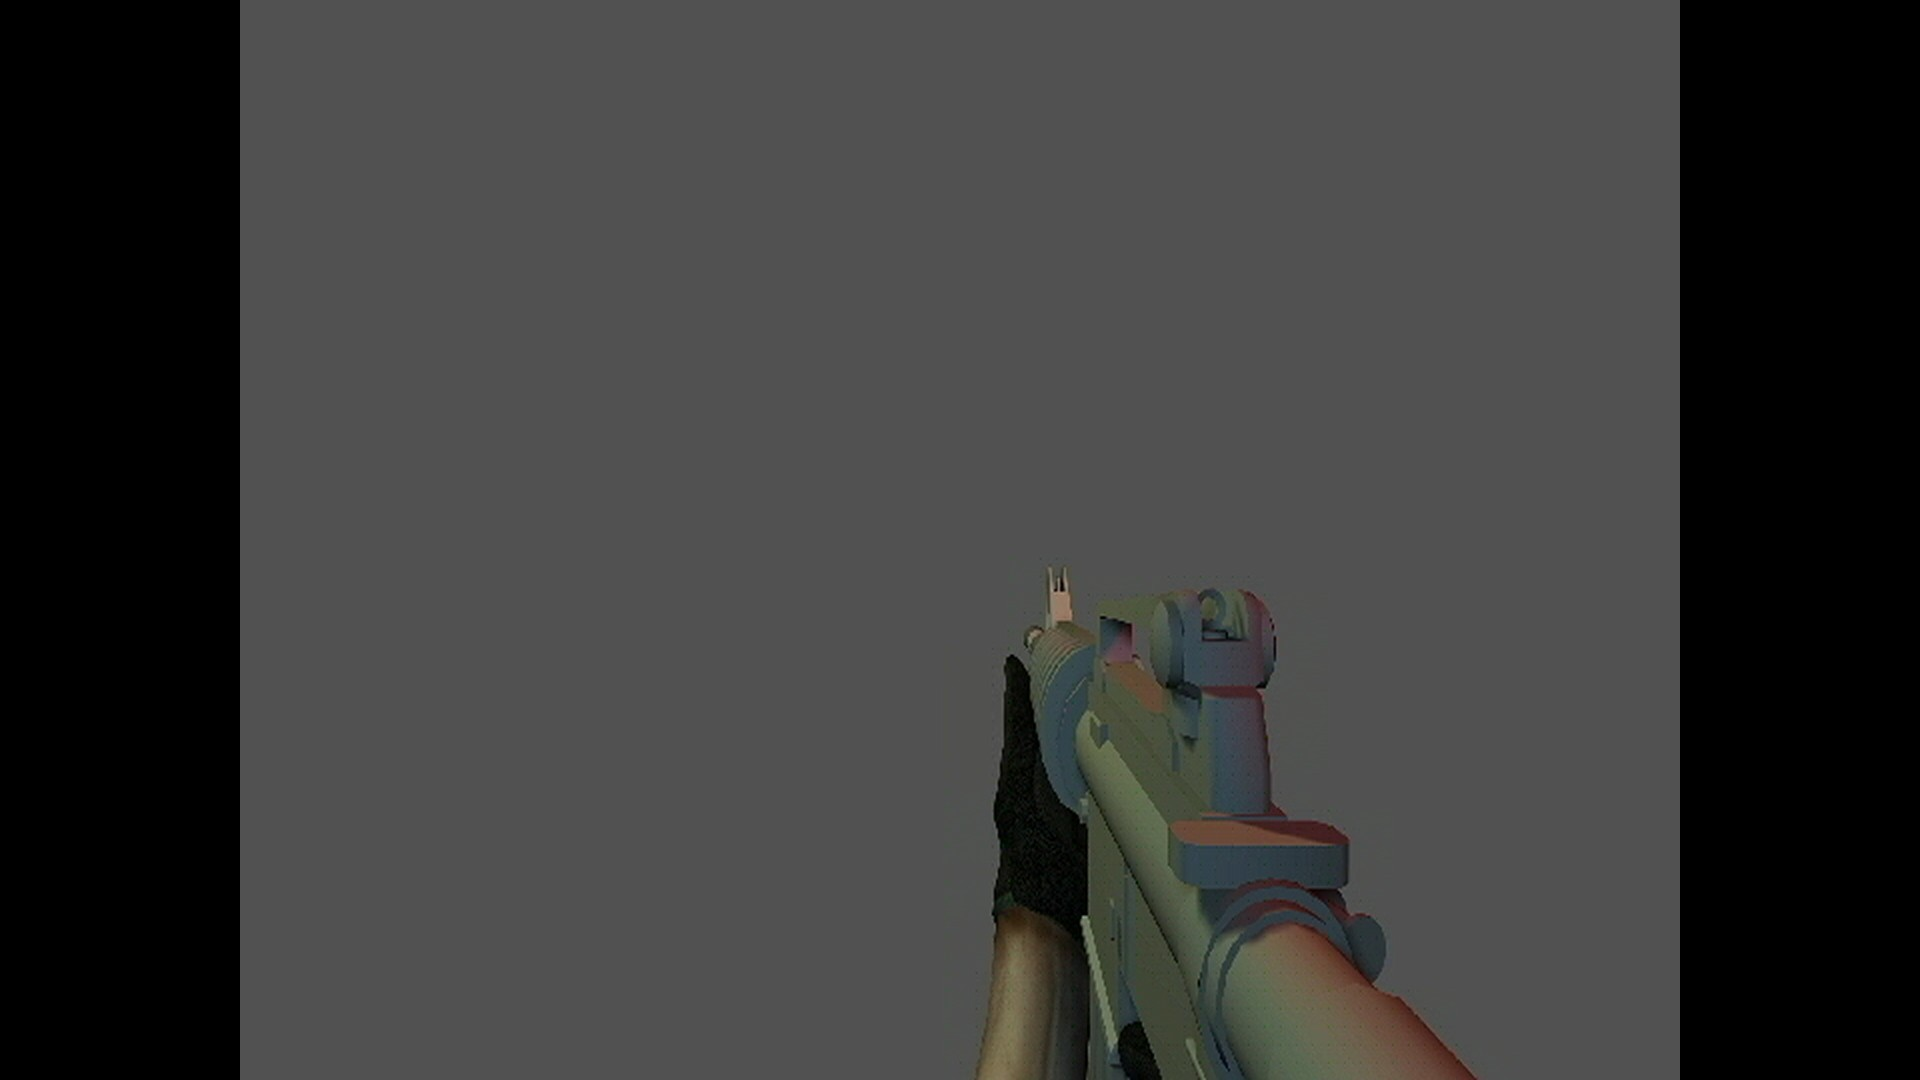 3d Models For Animation Bf3 M4a1 Animations 3d Models